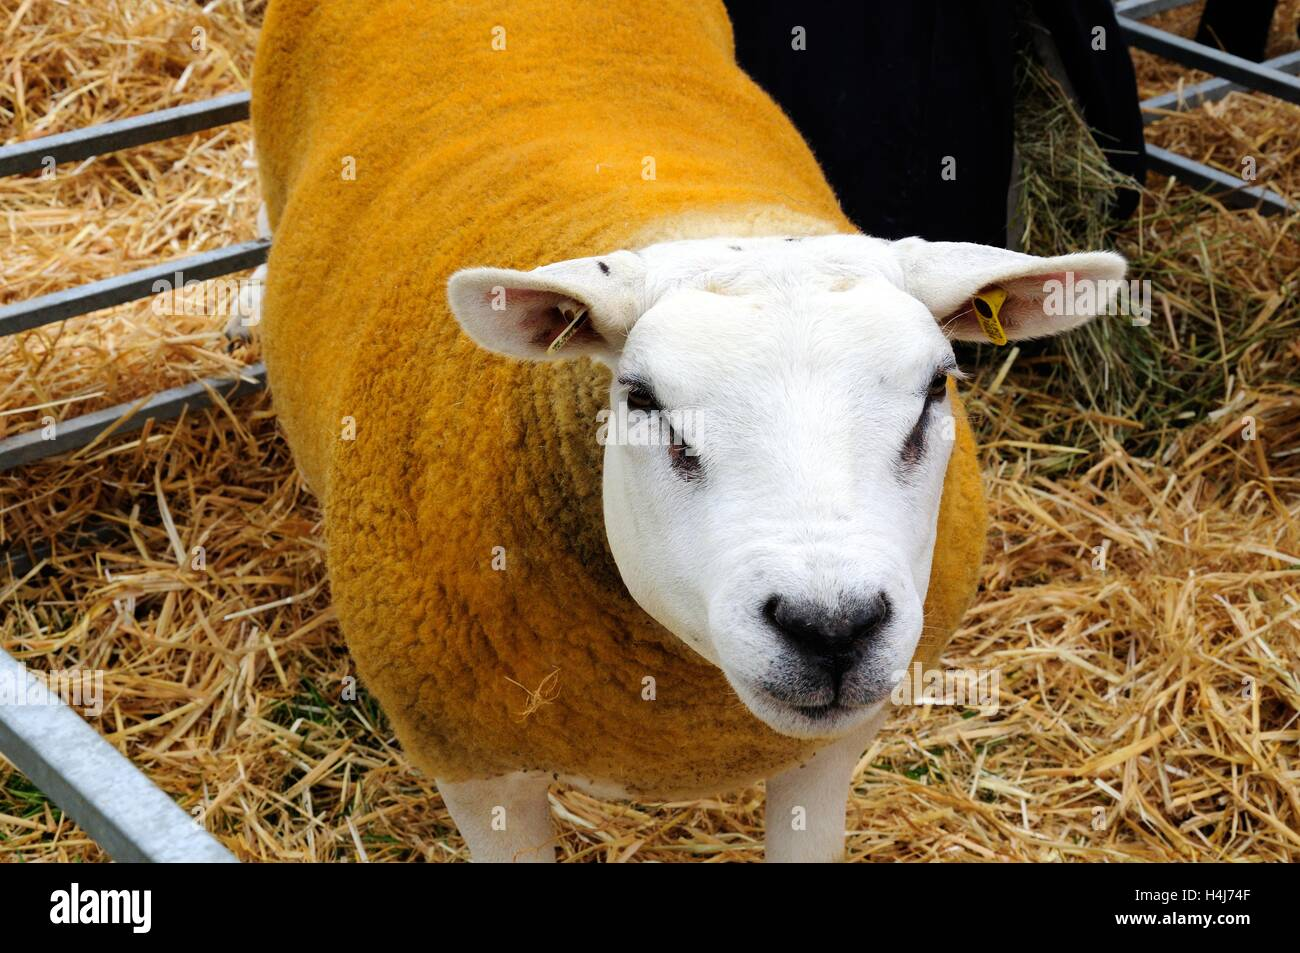 Texel sheep ewe dyed orange in a pen at an agricultural show